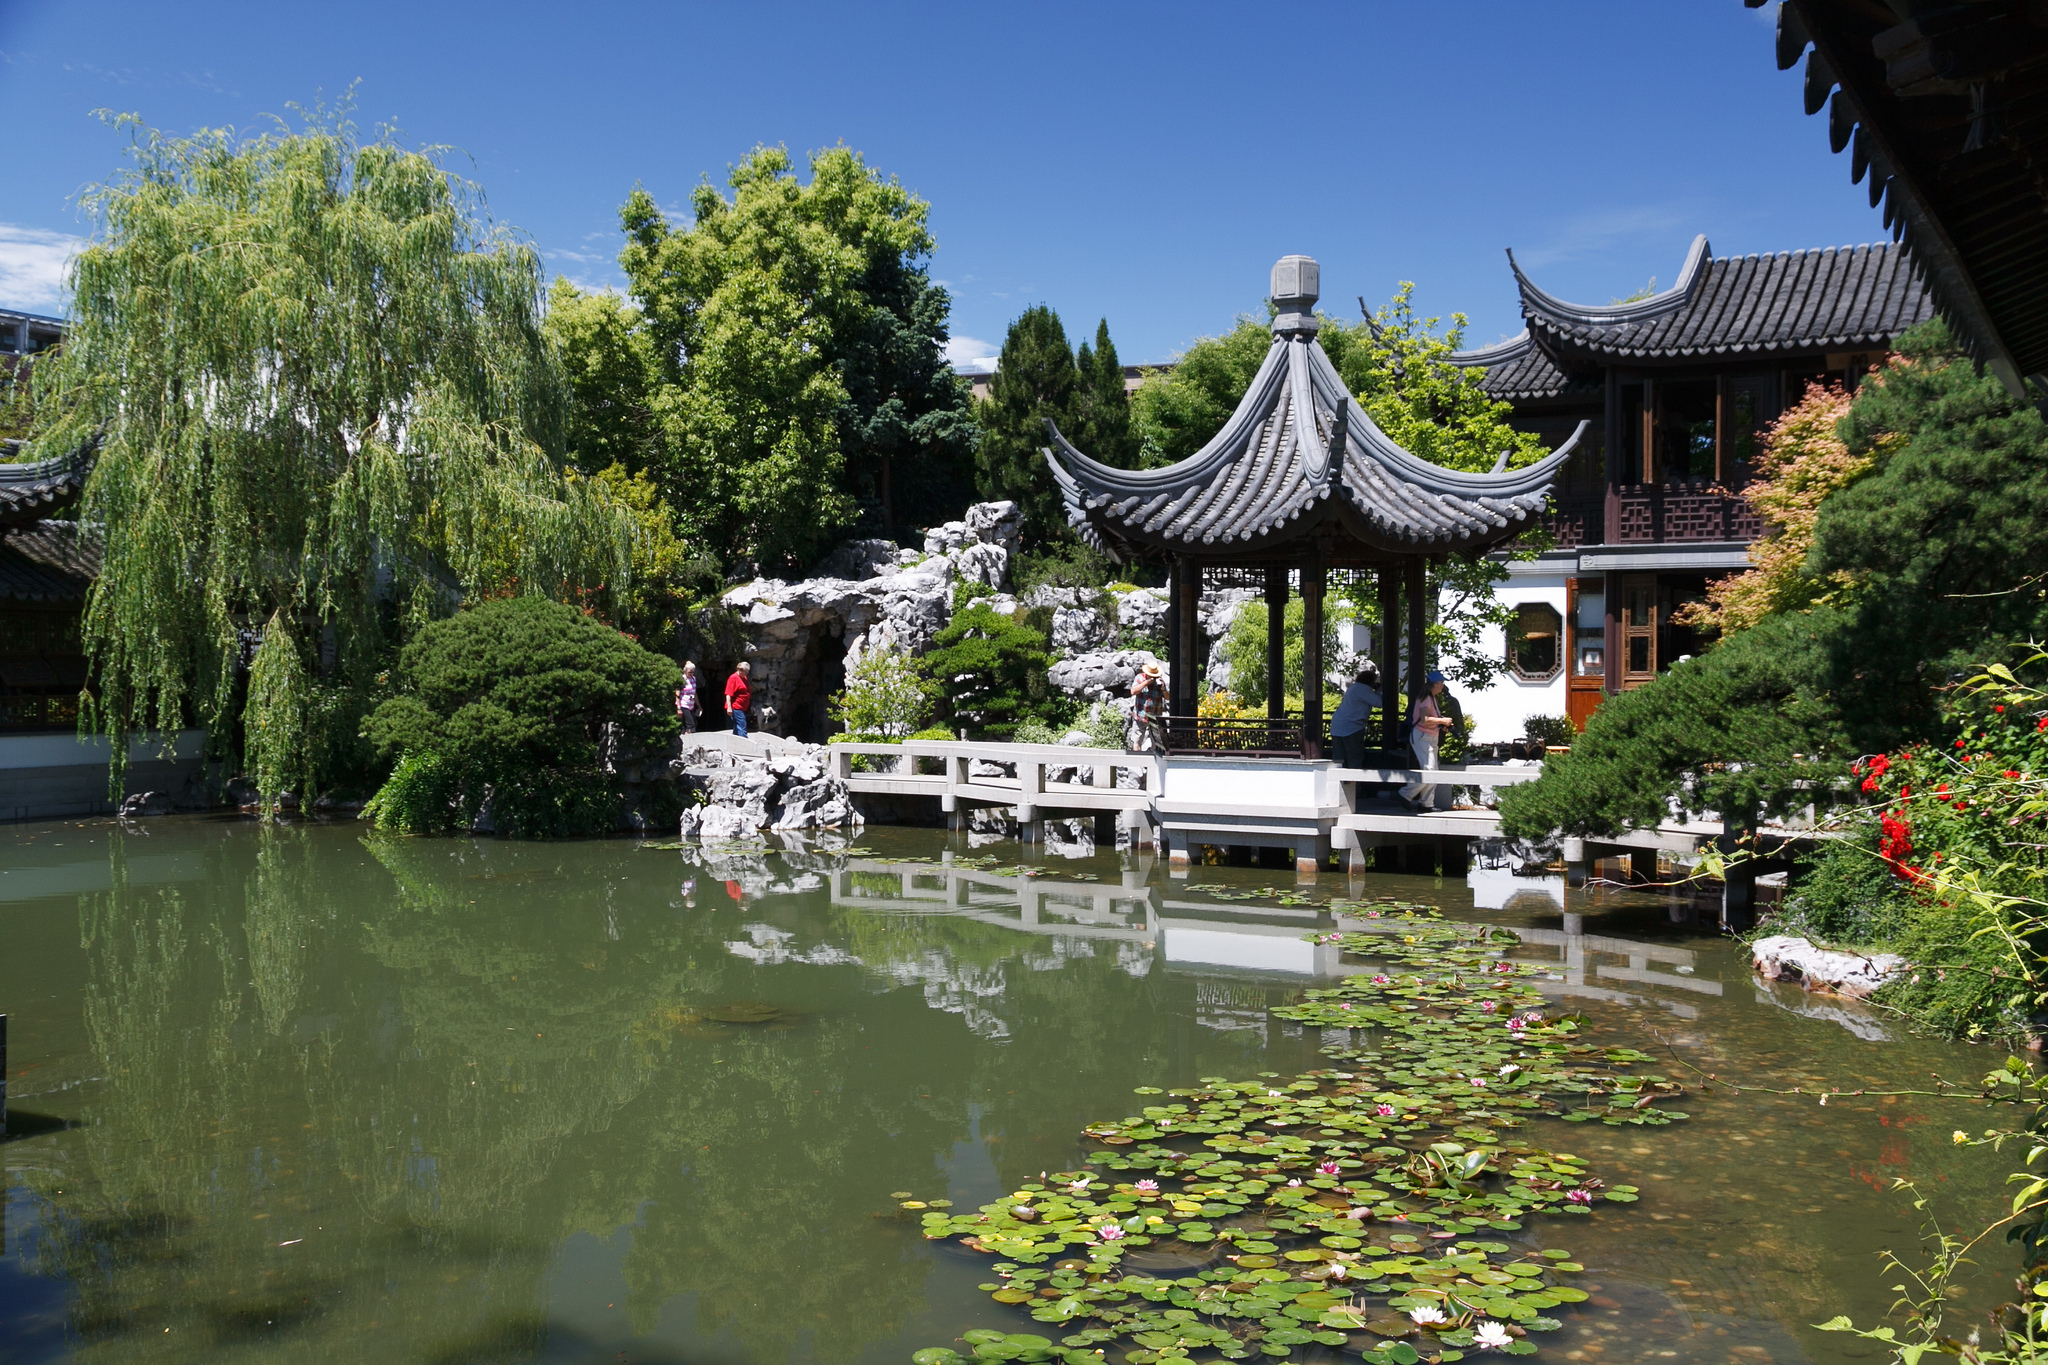 lan su chinese garden urban park in portland thousand wonders